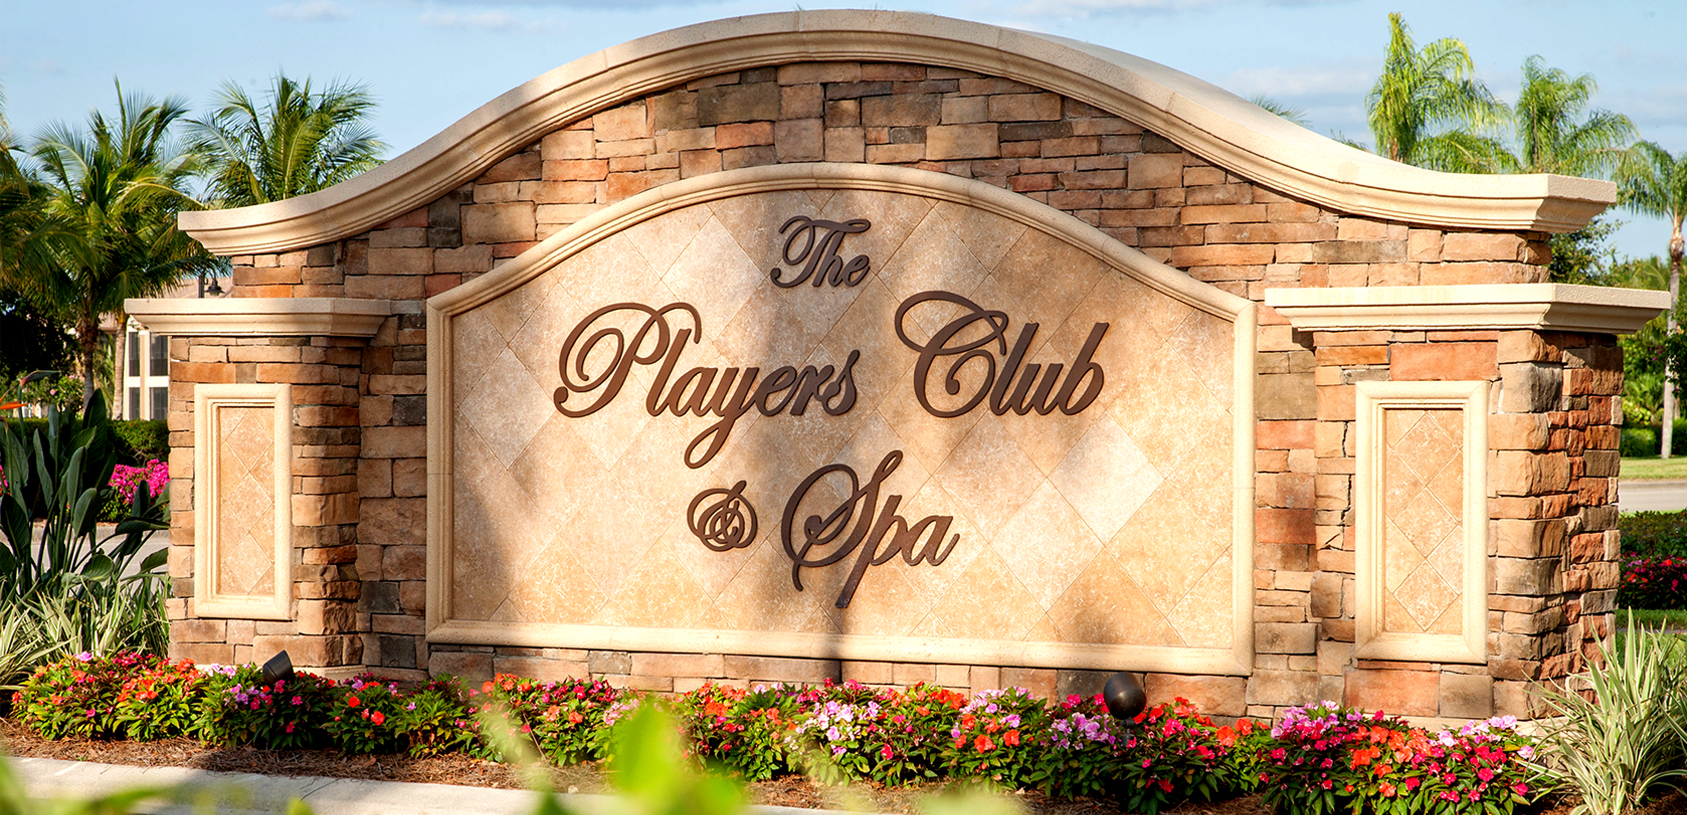 Players Club at Lely's Resort 03